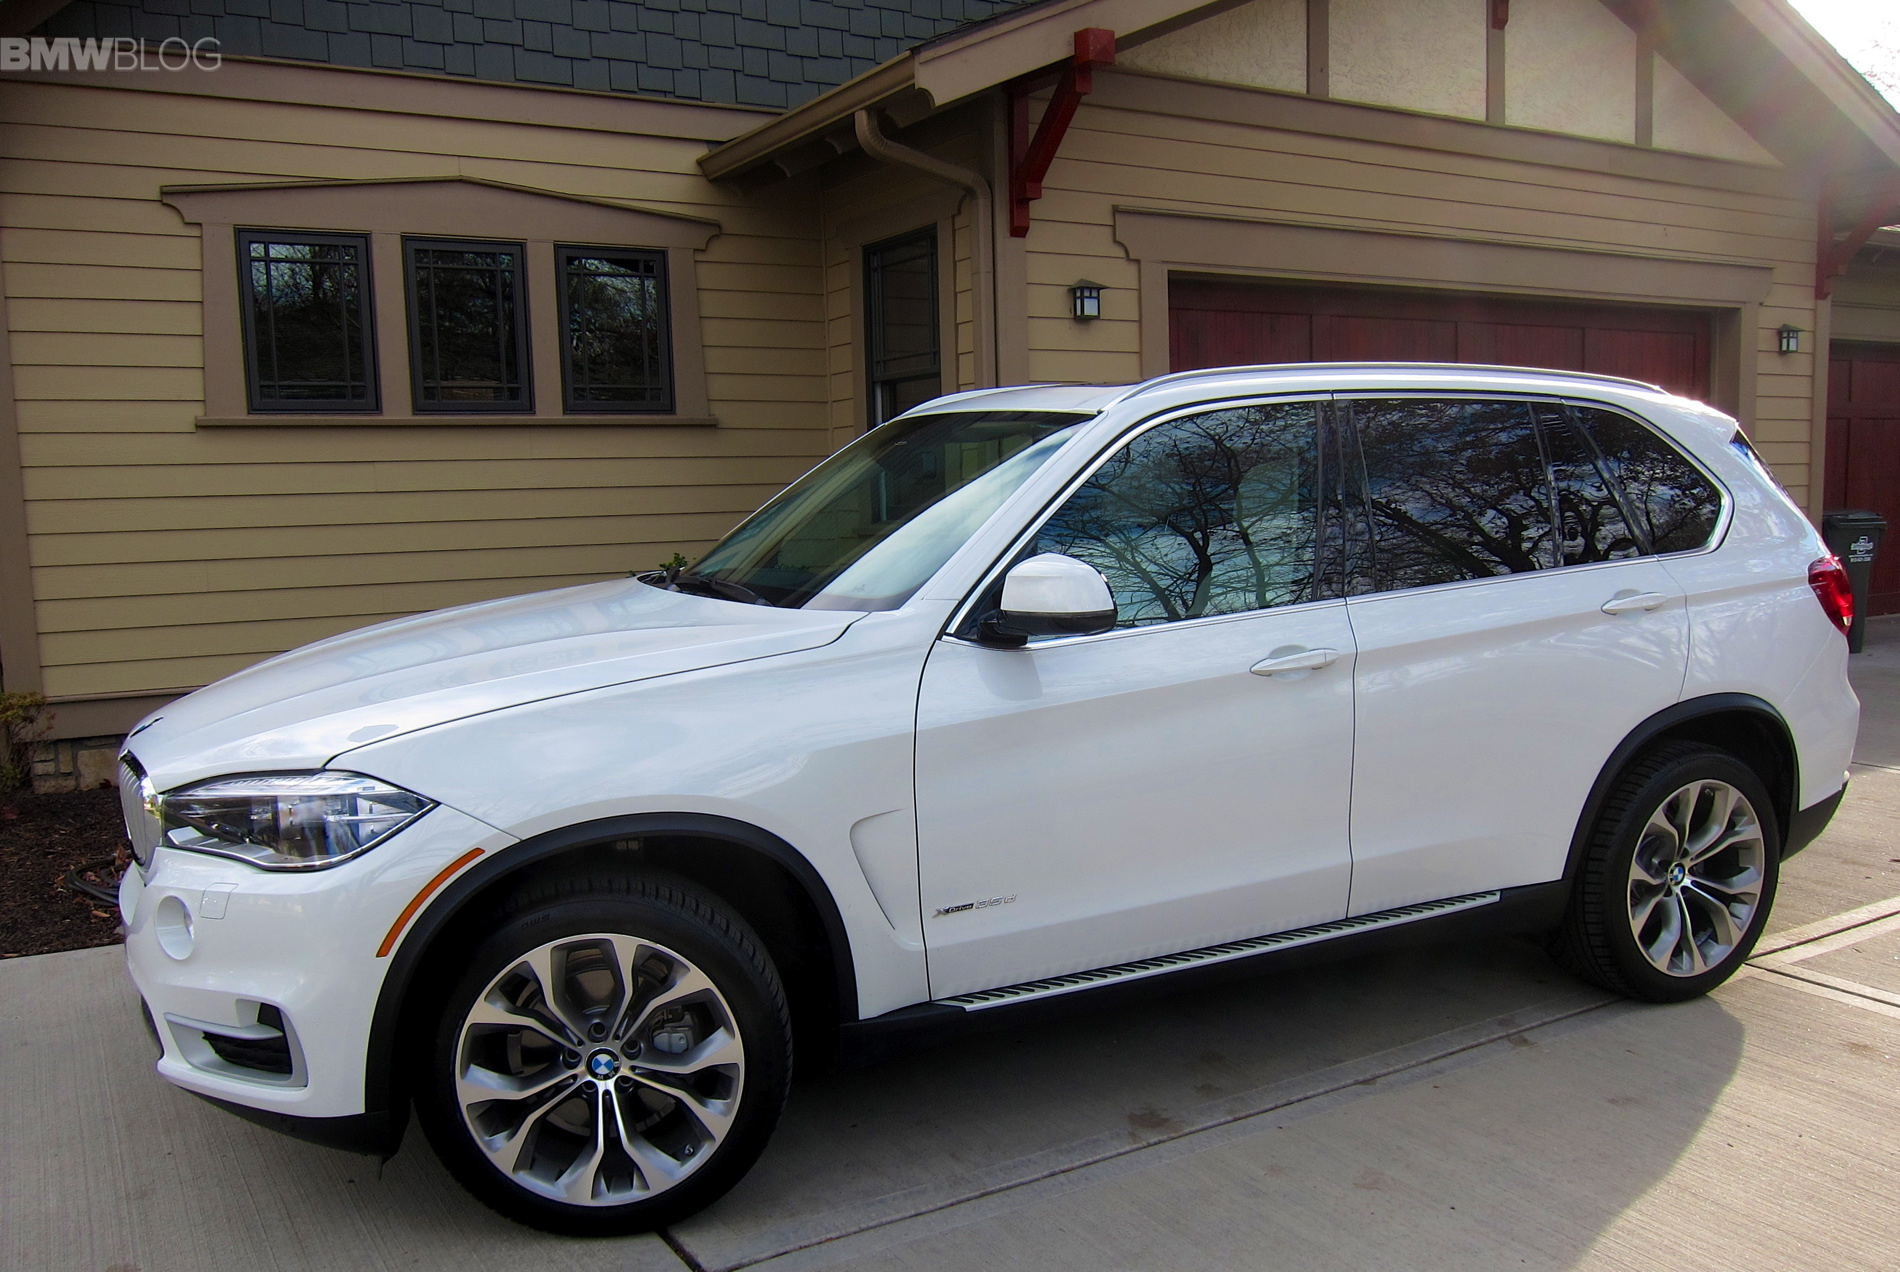 2015 Bmw X1 >> 2016 BMW X5 xDrive35d undergoes minor technical updates, delivers in December 2015